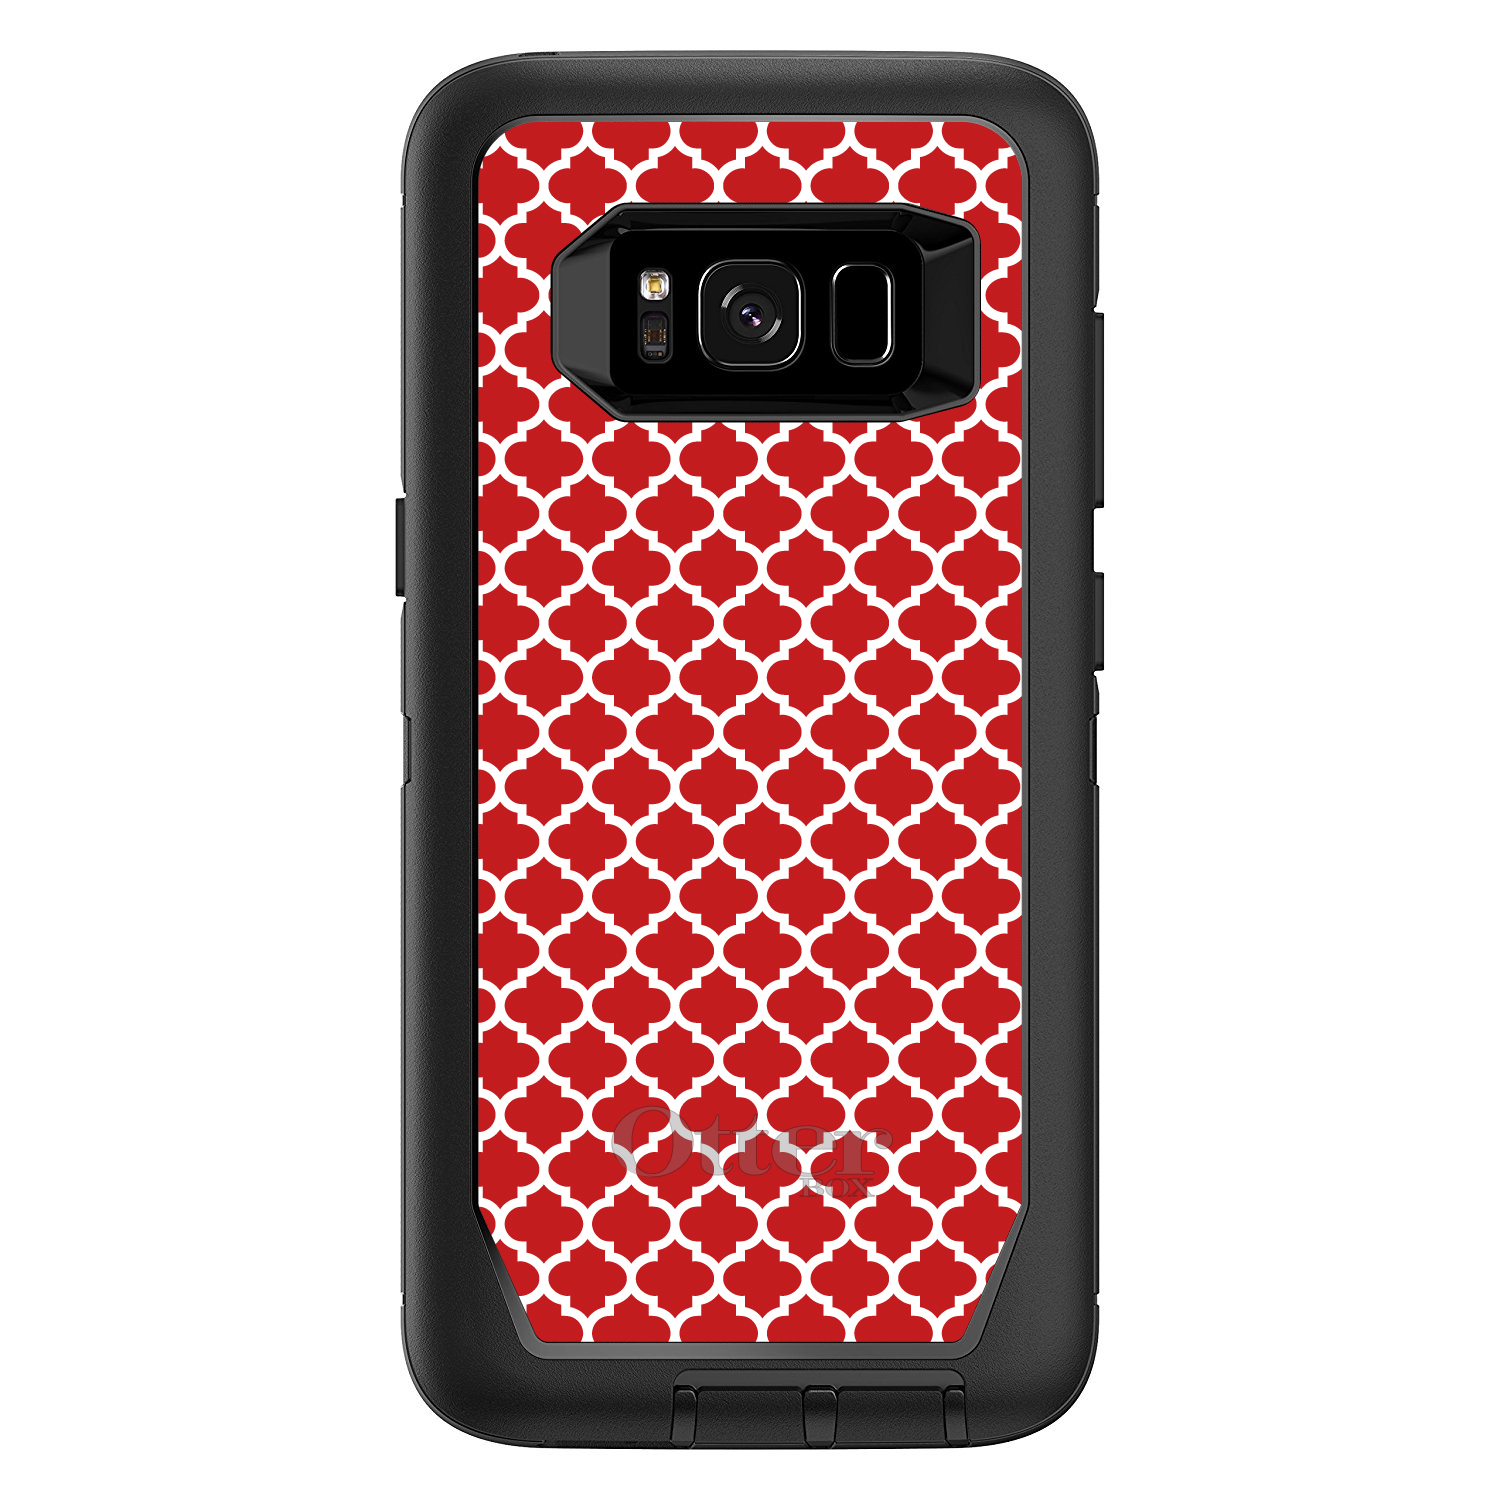 "DistinctInk™ Custom Black OtterBox Defender Series Case for Samsung Galaxy S8 (5.8"" Screen) - Red White Moroccan Lattice"